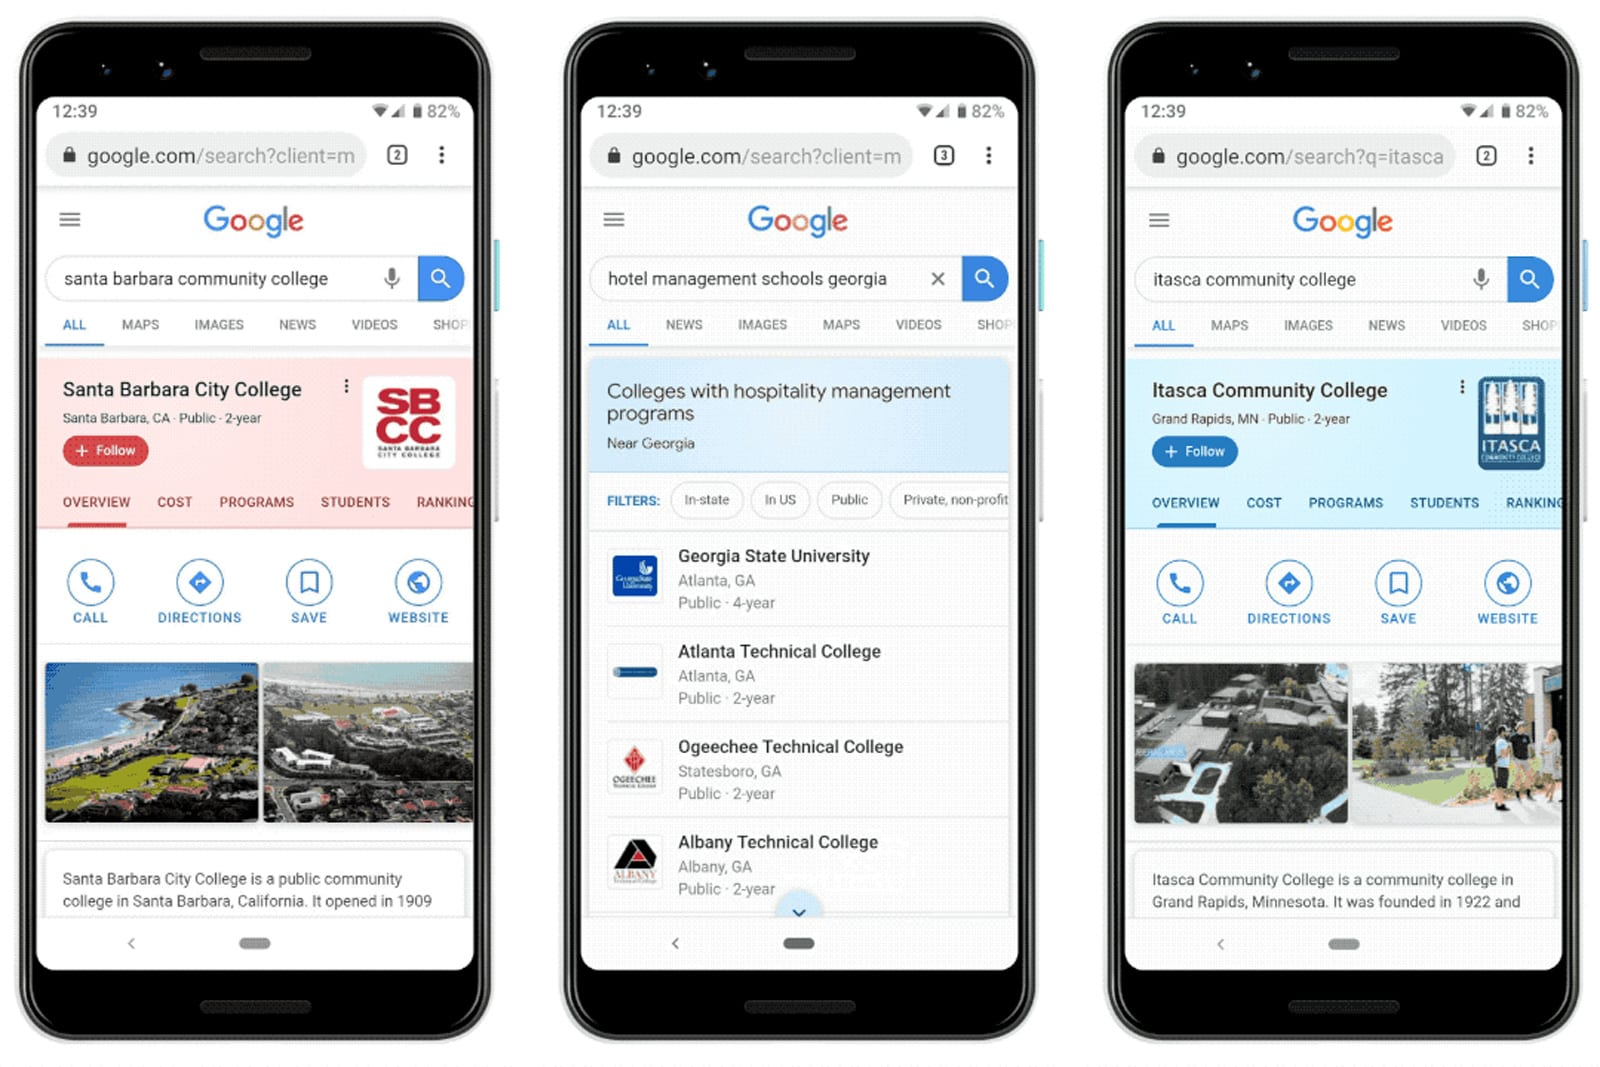 Google's expanded college search helps you explore fields of study